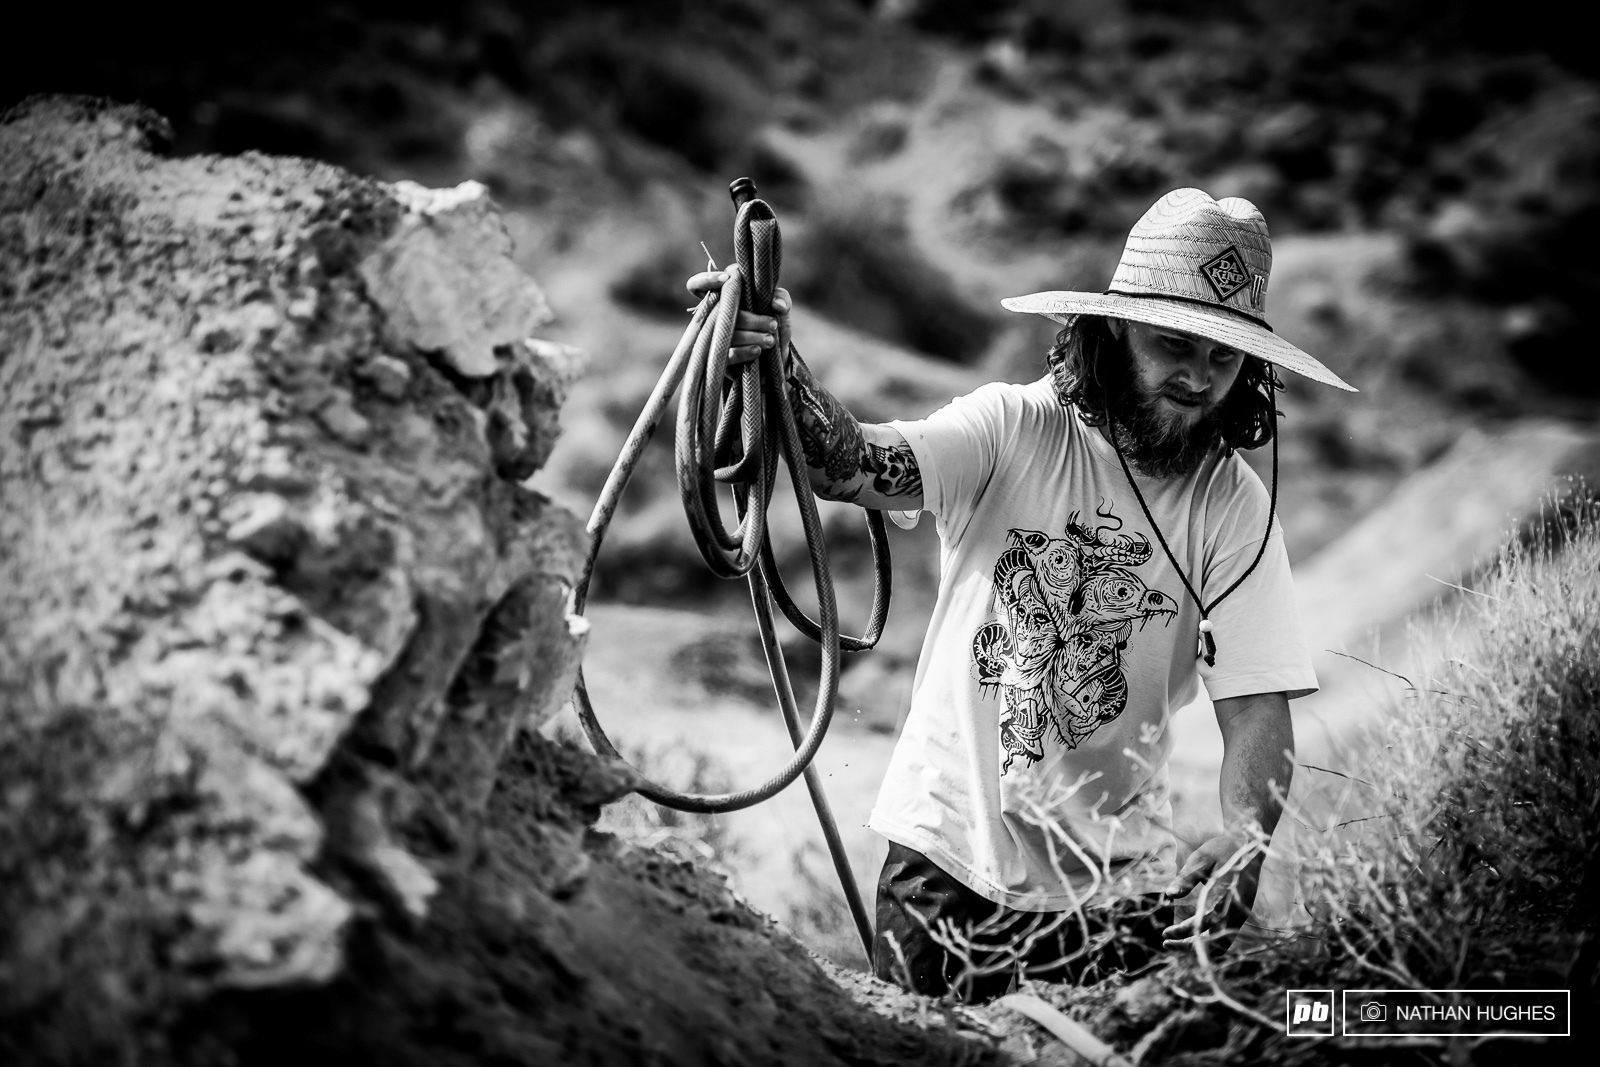 Aggy on top of his hydration nearing the end of some 10 hours digging on his line.